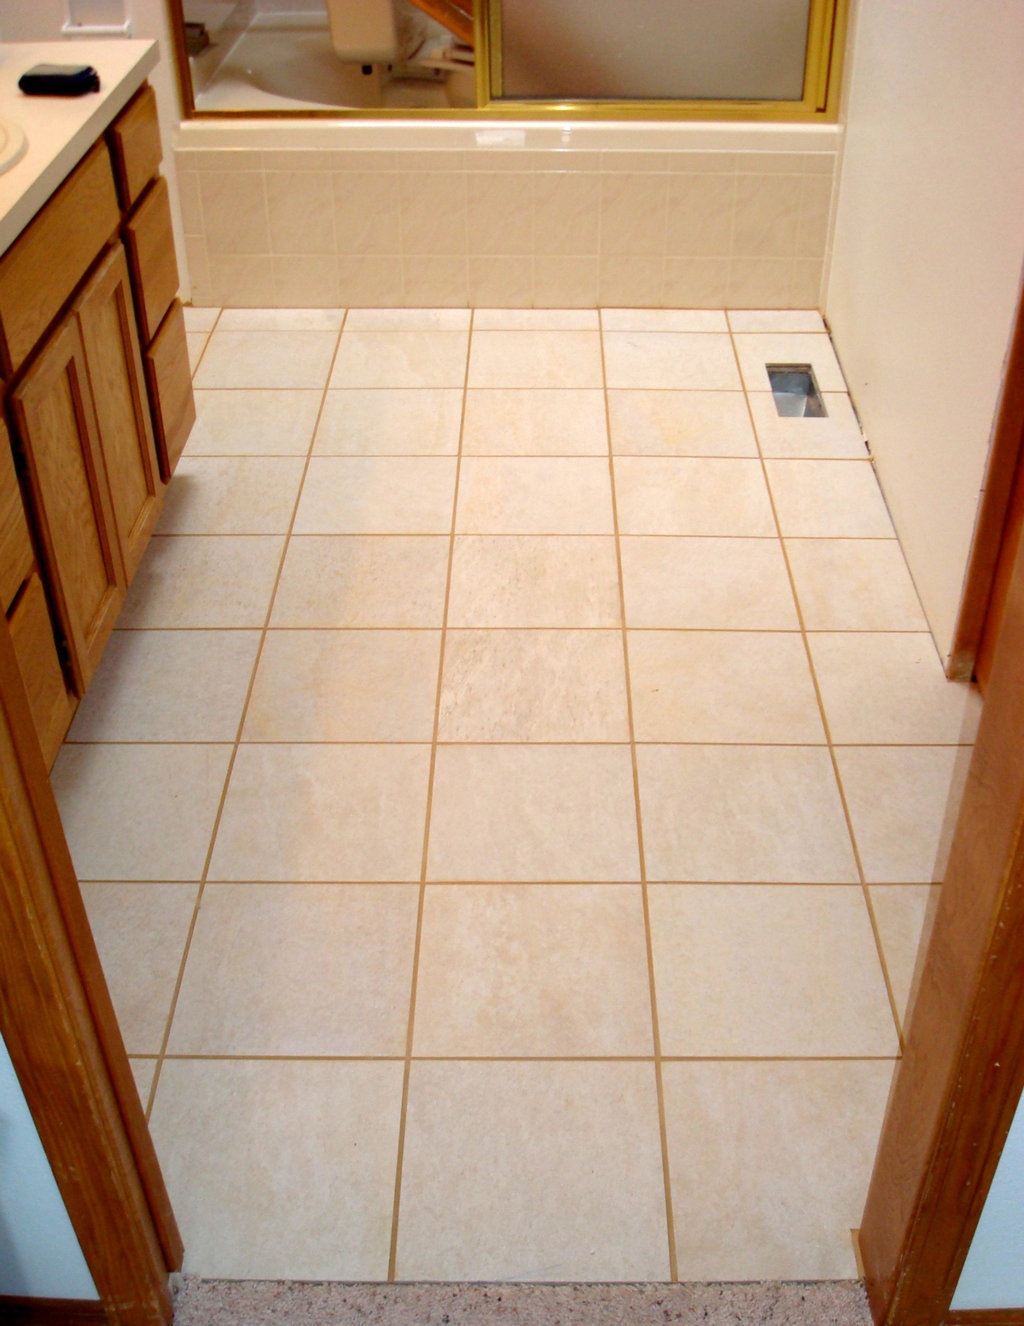 Porcelain Floor Tiles Ceramic Tile Flooring For Your Homes Tiles Flooring